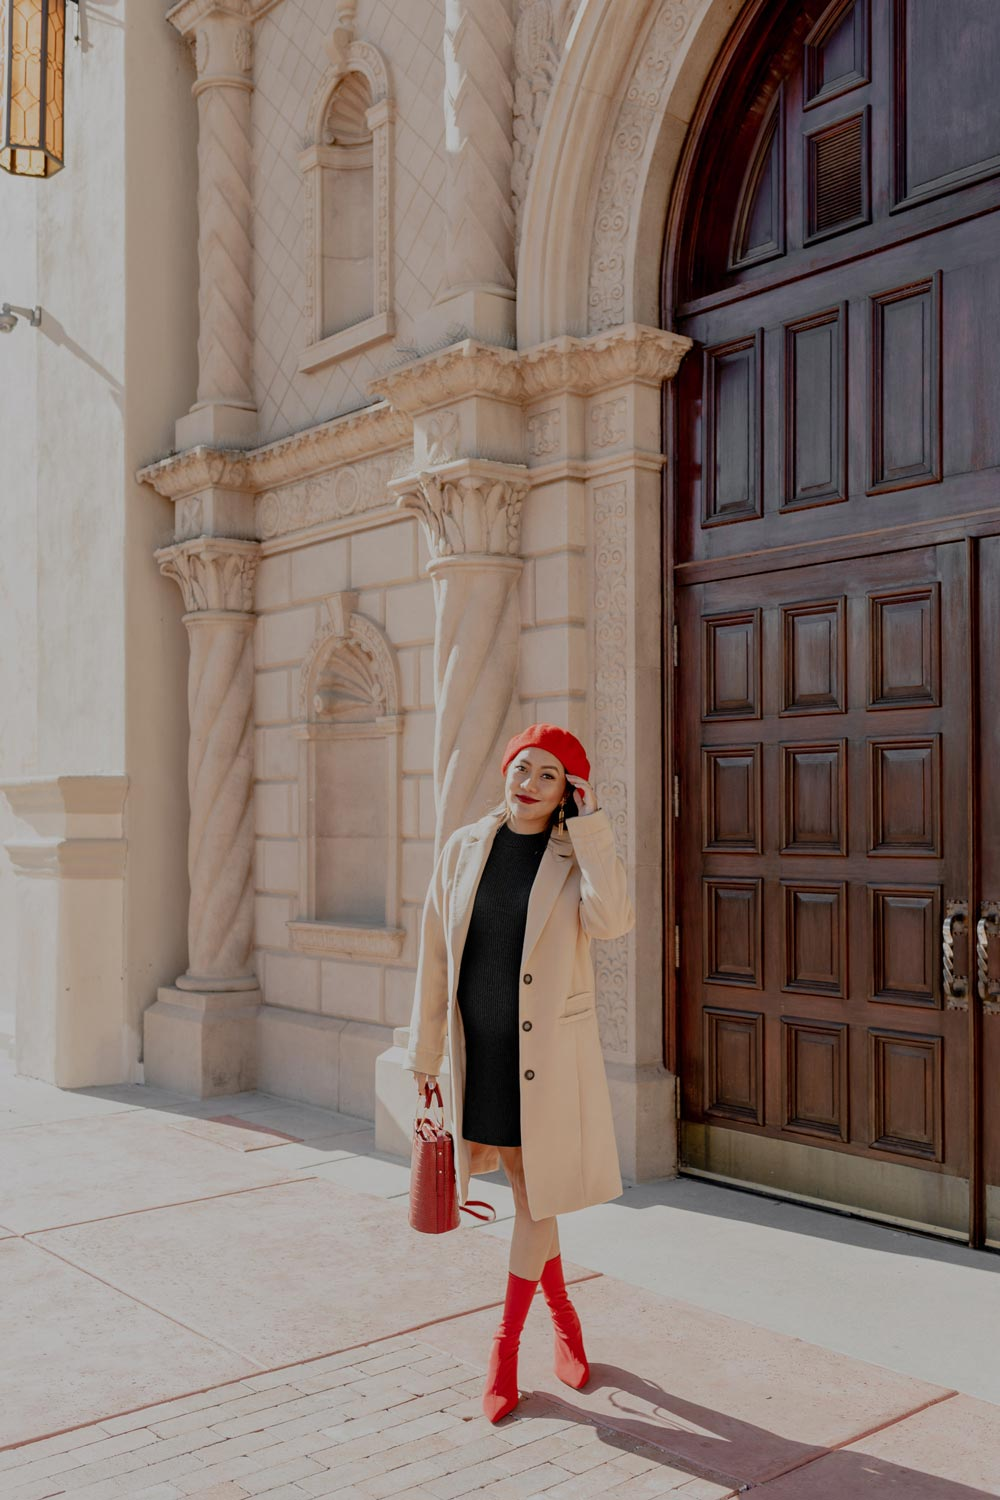 Last Minute Holiday Outfit | Pop of Colors with A Beige Coat #GoodVibesGifting Day 2